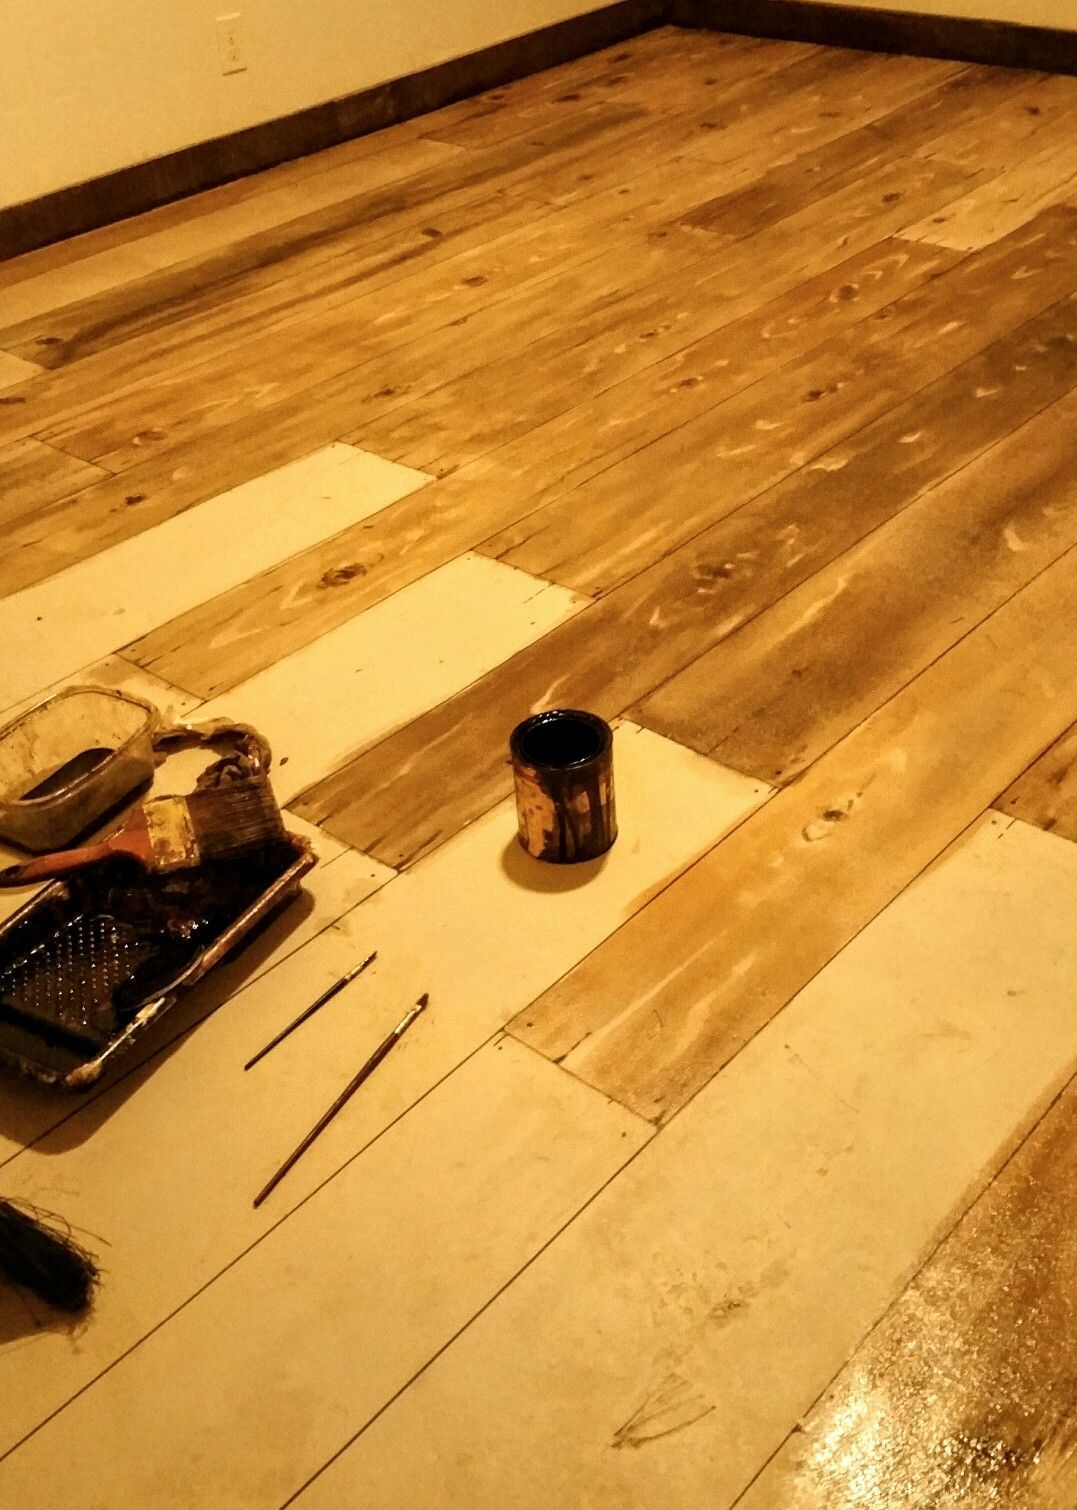 This Is A Concrete Floor Painted To Look Like Wood Using Gel Stain And Graining Tool Small Brushes Are Used Add Detail